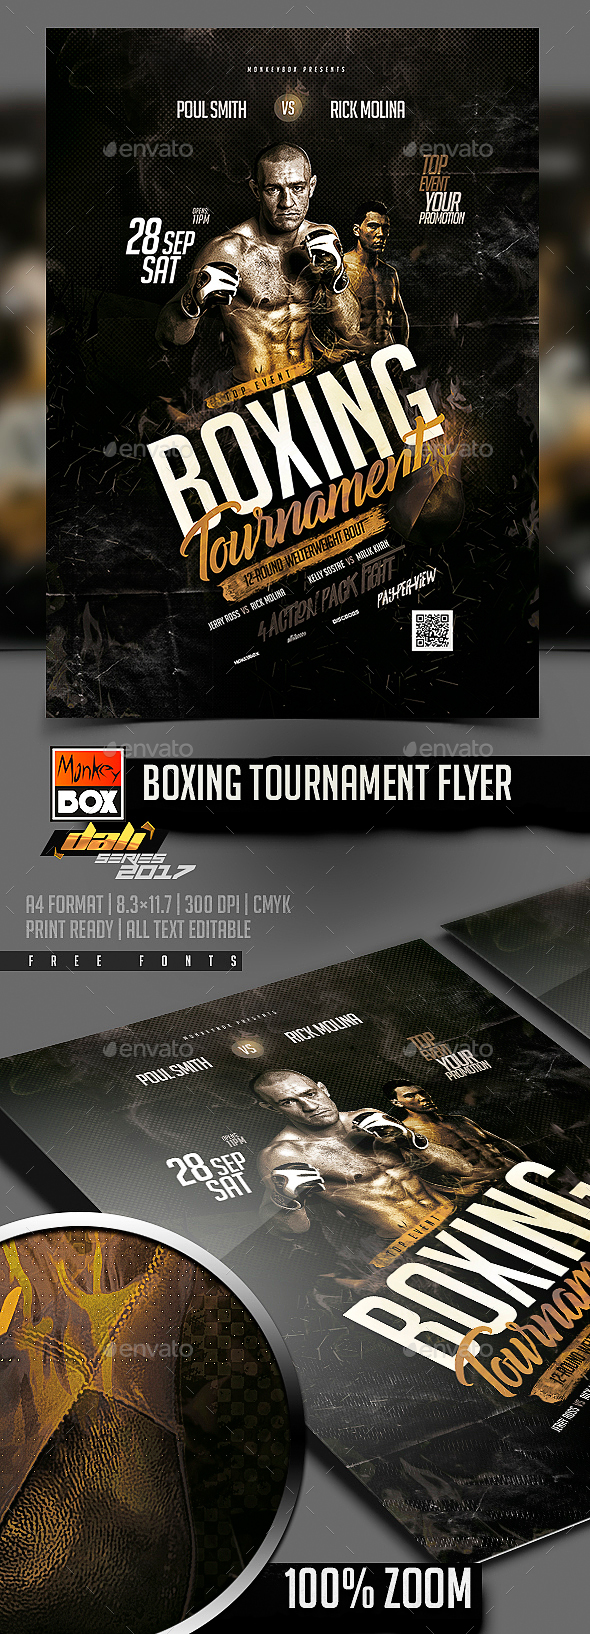 Boxing Tournament Flyer - Flyers Print Templates